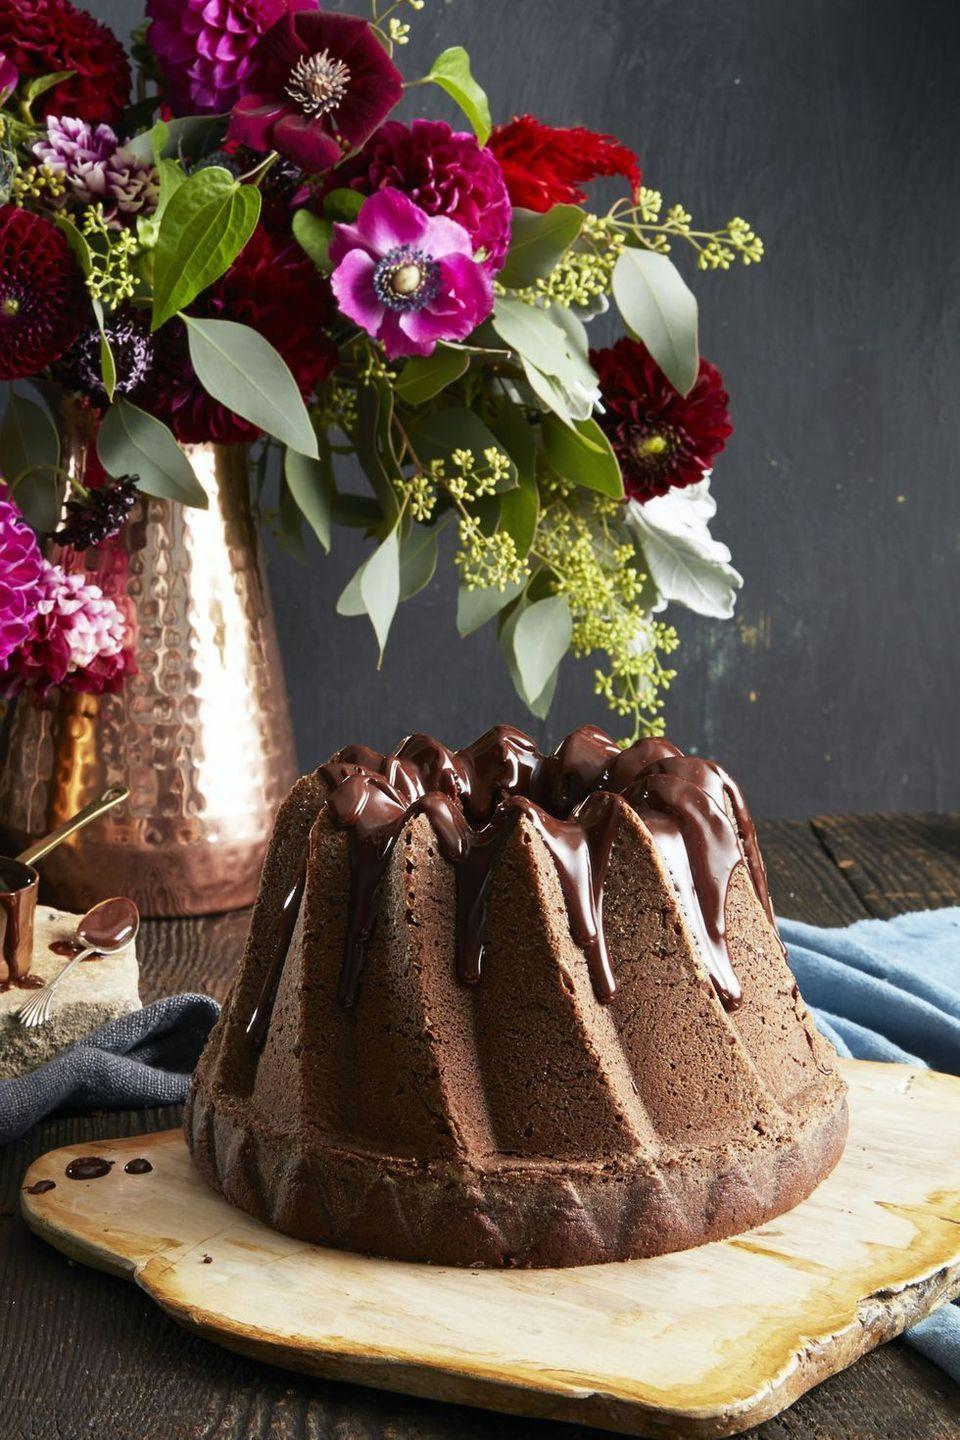 """<p>A cup of strong coffee adds a kick to this moist cocoa cake.</p><p><strong><em>Get the recipe from <a href=""""https://www.goodhousekeeping.com/food-recipes/dessert/a35180/double-chocolate-bundt/"""" rel=""""nofollow noopener"""" target=""""_blank"""" data-ylk=""""slk:Good Housekeeping"""" class=""""link rapid-noclick-resp"""">Good Housekeeping</a>.</em></strong></p>"""